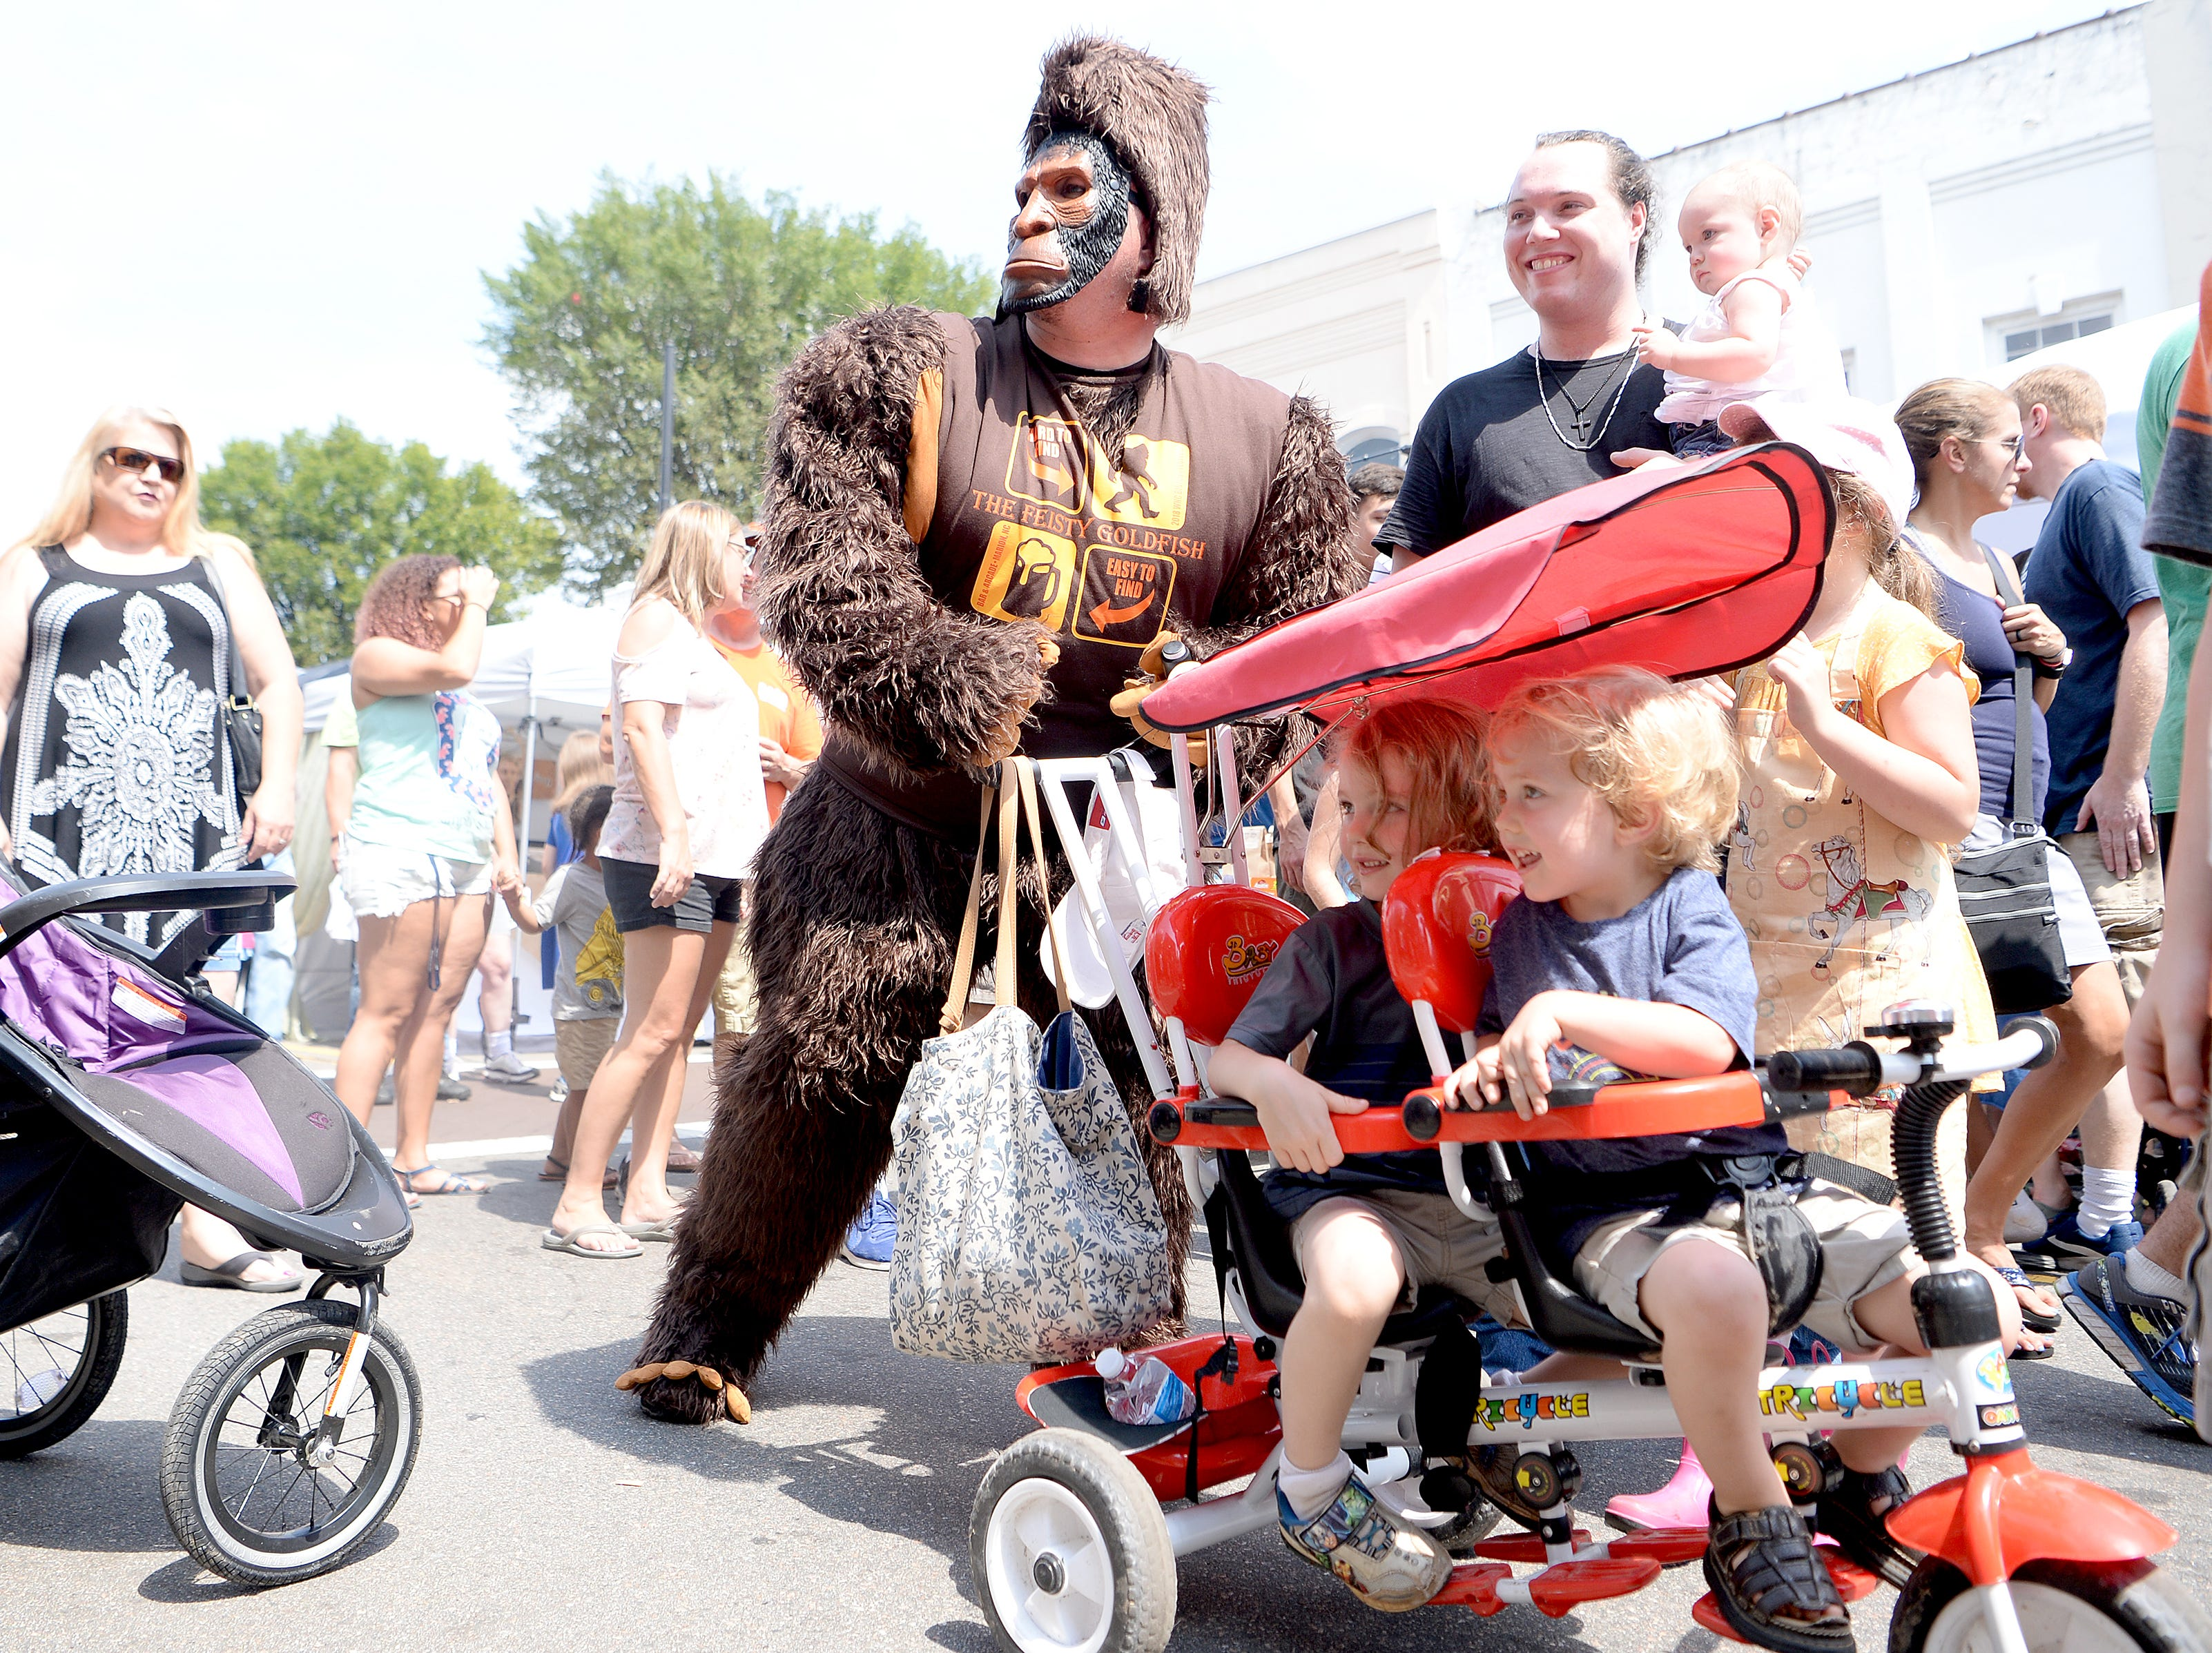 A Bigfoot kidnaps Jacob and Jeremiah Faulkner, 4 and 3 respectively, for a photograph during the first ever WNC Bigfoot Festival in Marion on Sept. 8, 2018.